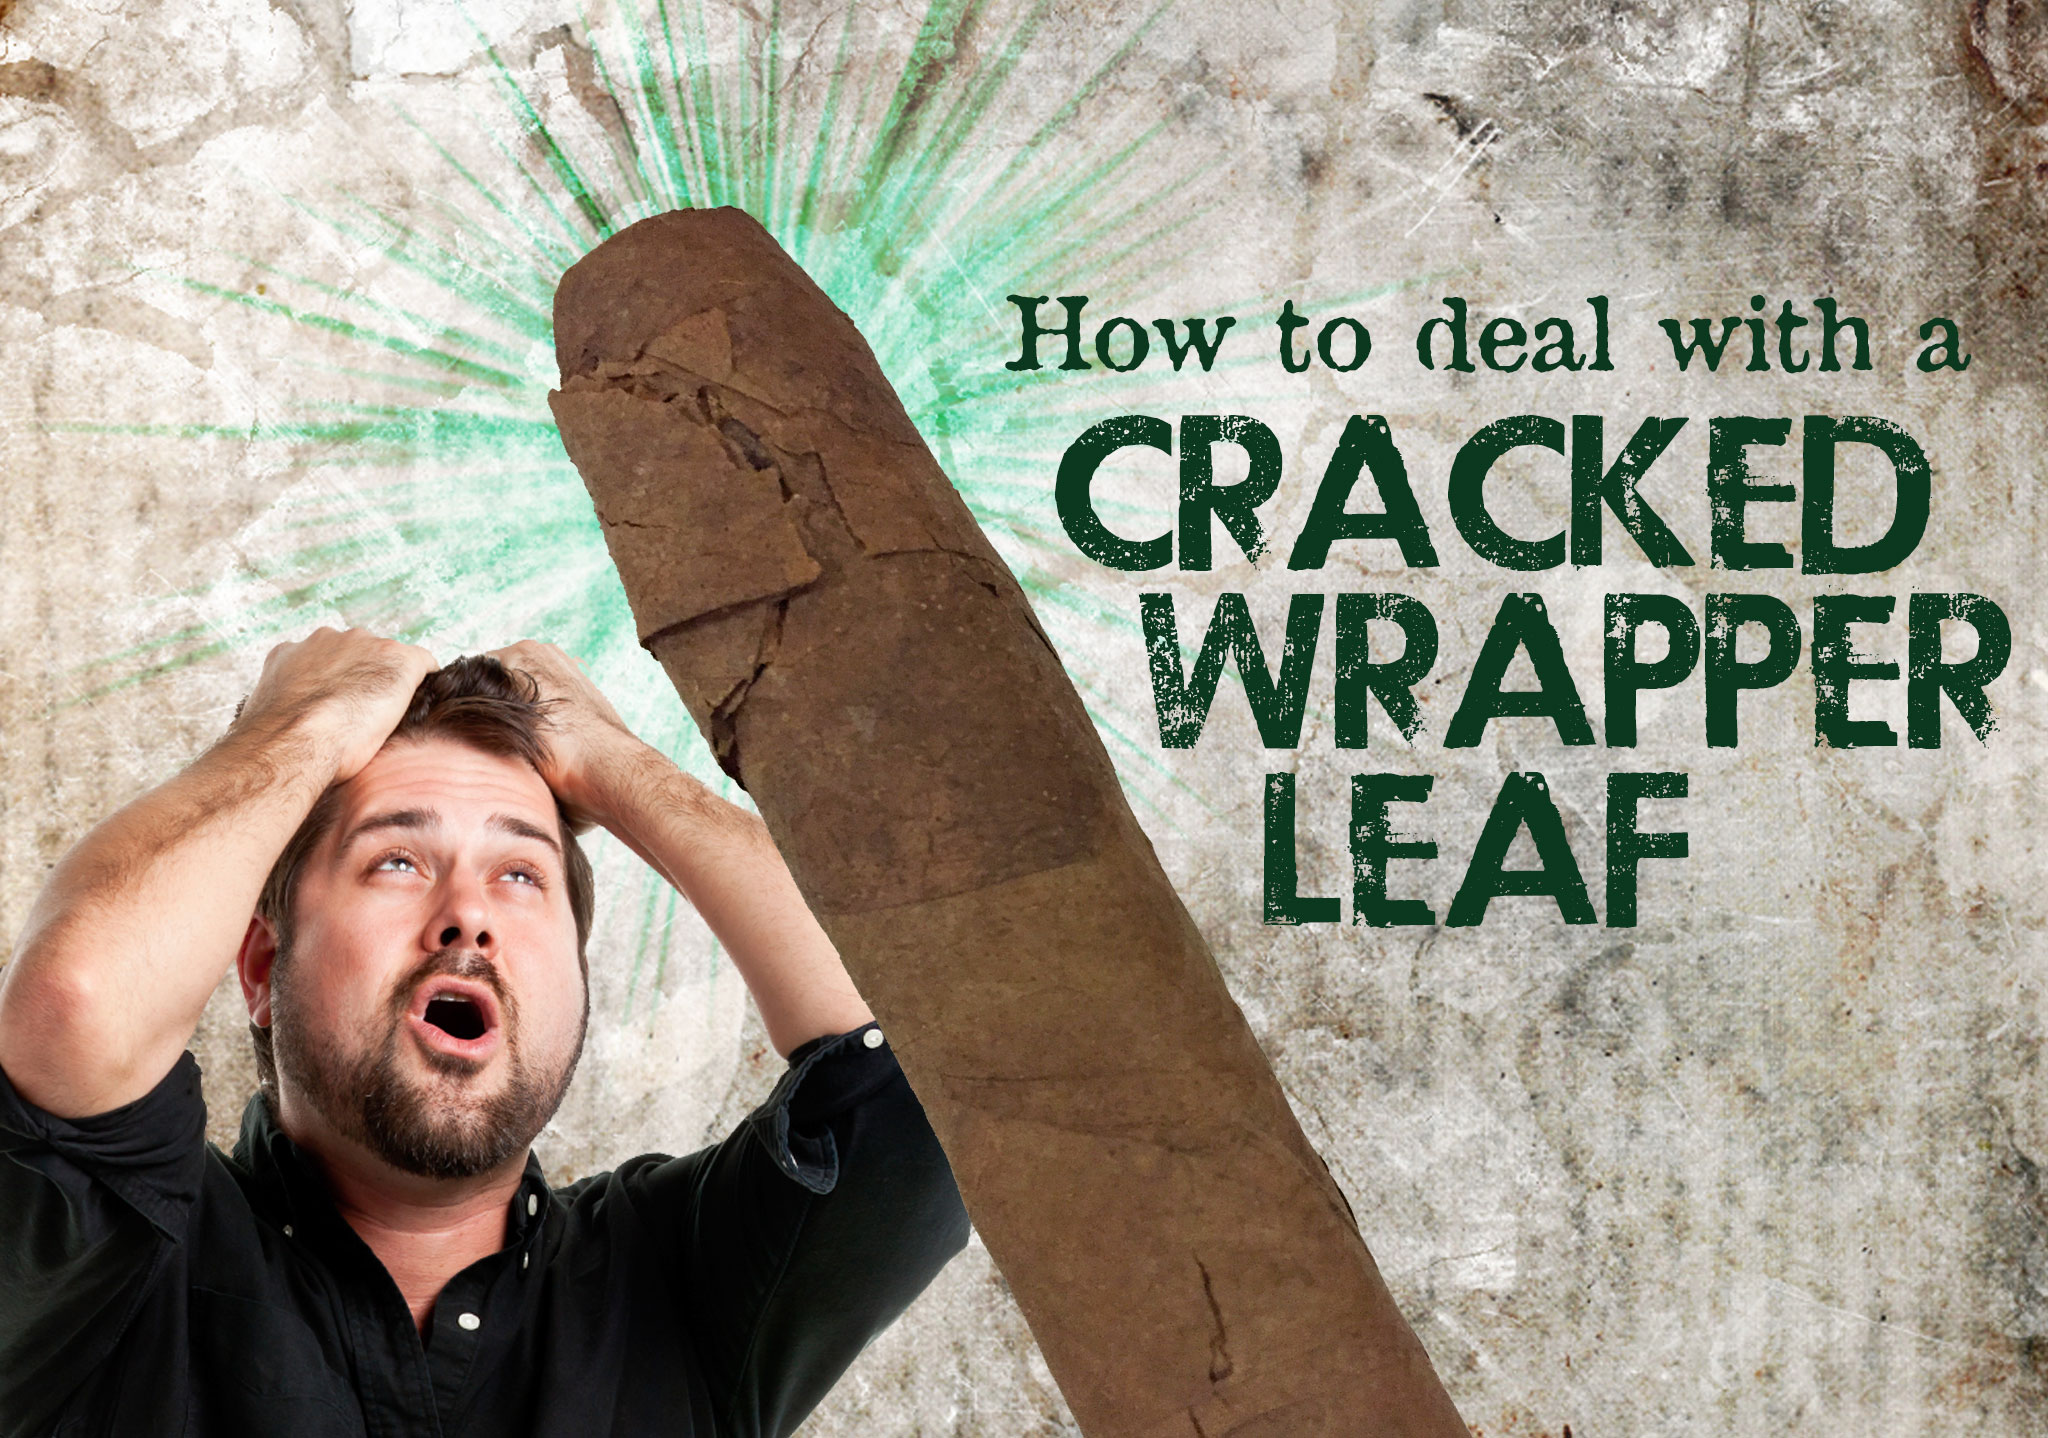 How to deal with a cracked wrapper leaf